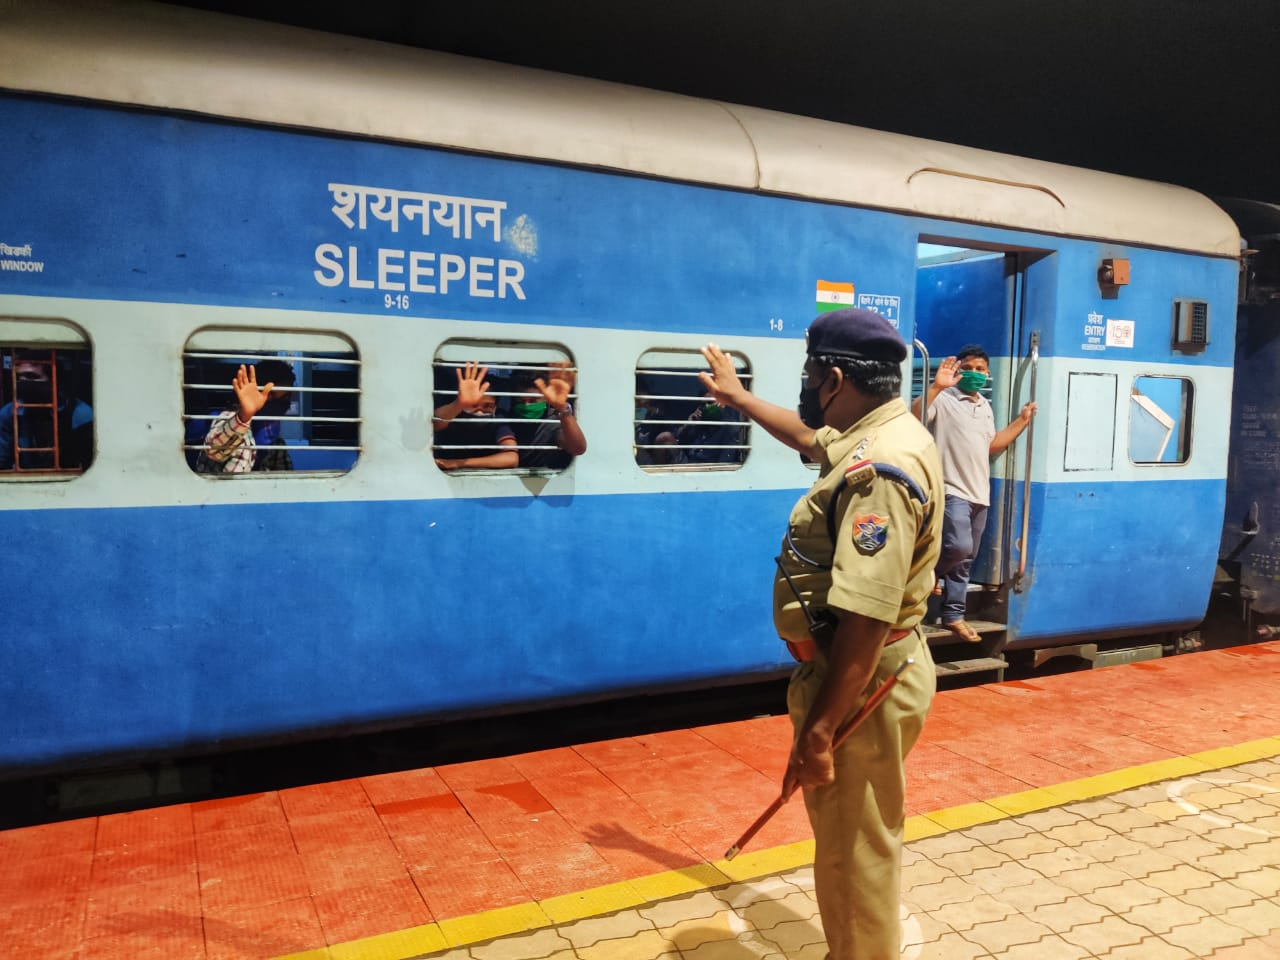 Shramik Express Trains Departs To Bihar And Jharkhand With 2380 Passengers On Board